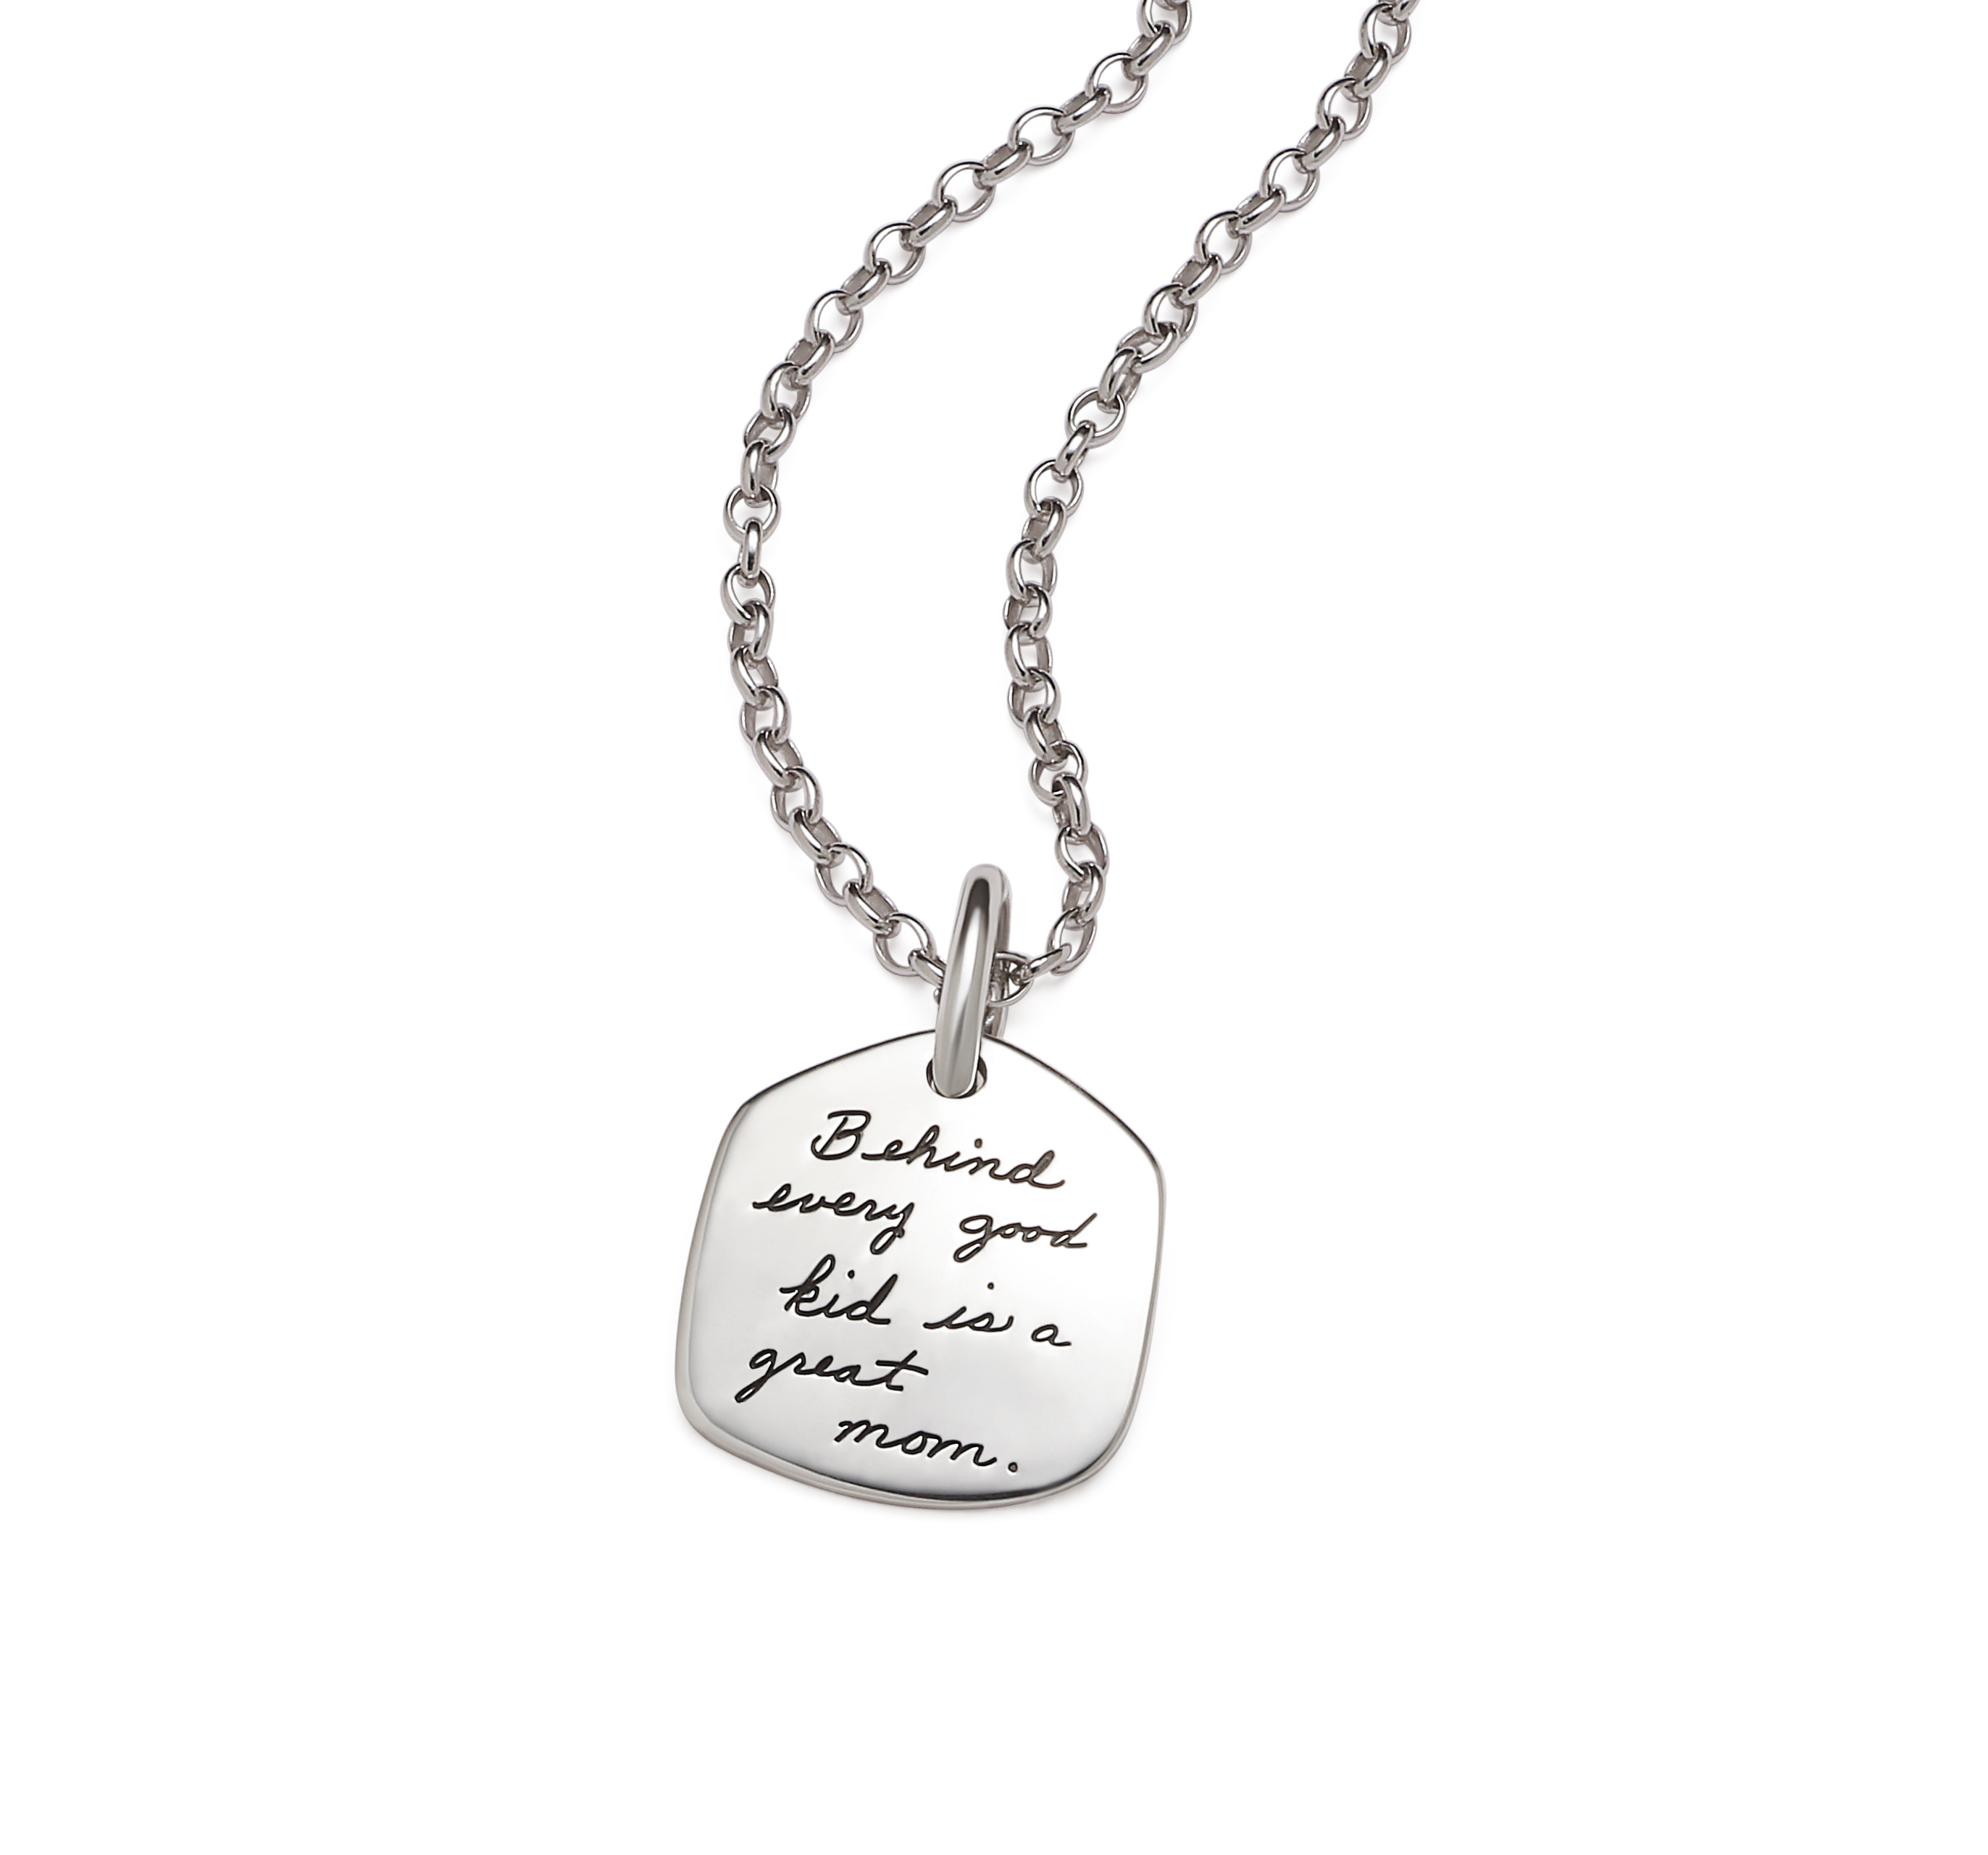 Inspirational Sterling Silver Necklace in the shape of a Pentagon with the quote: Behind every good kid is a great mom.